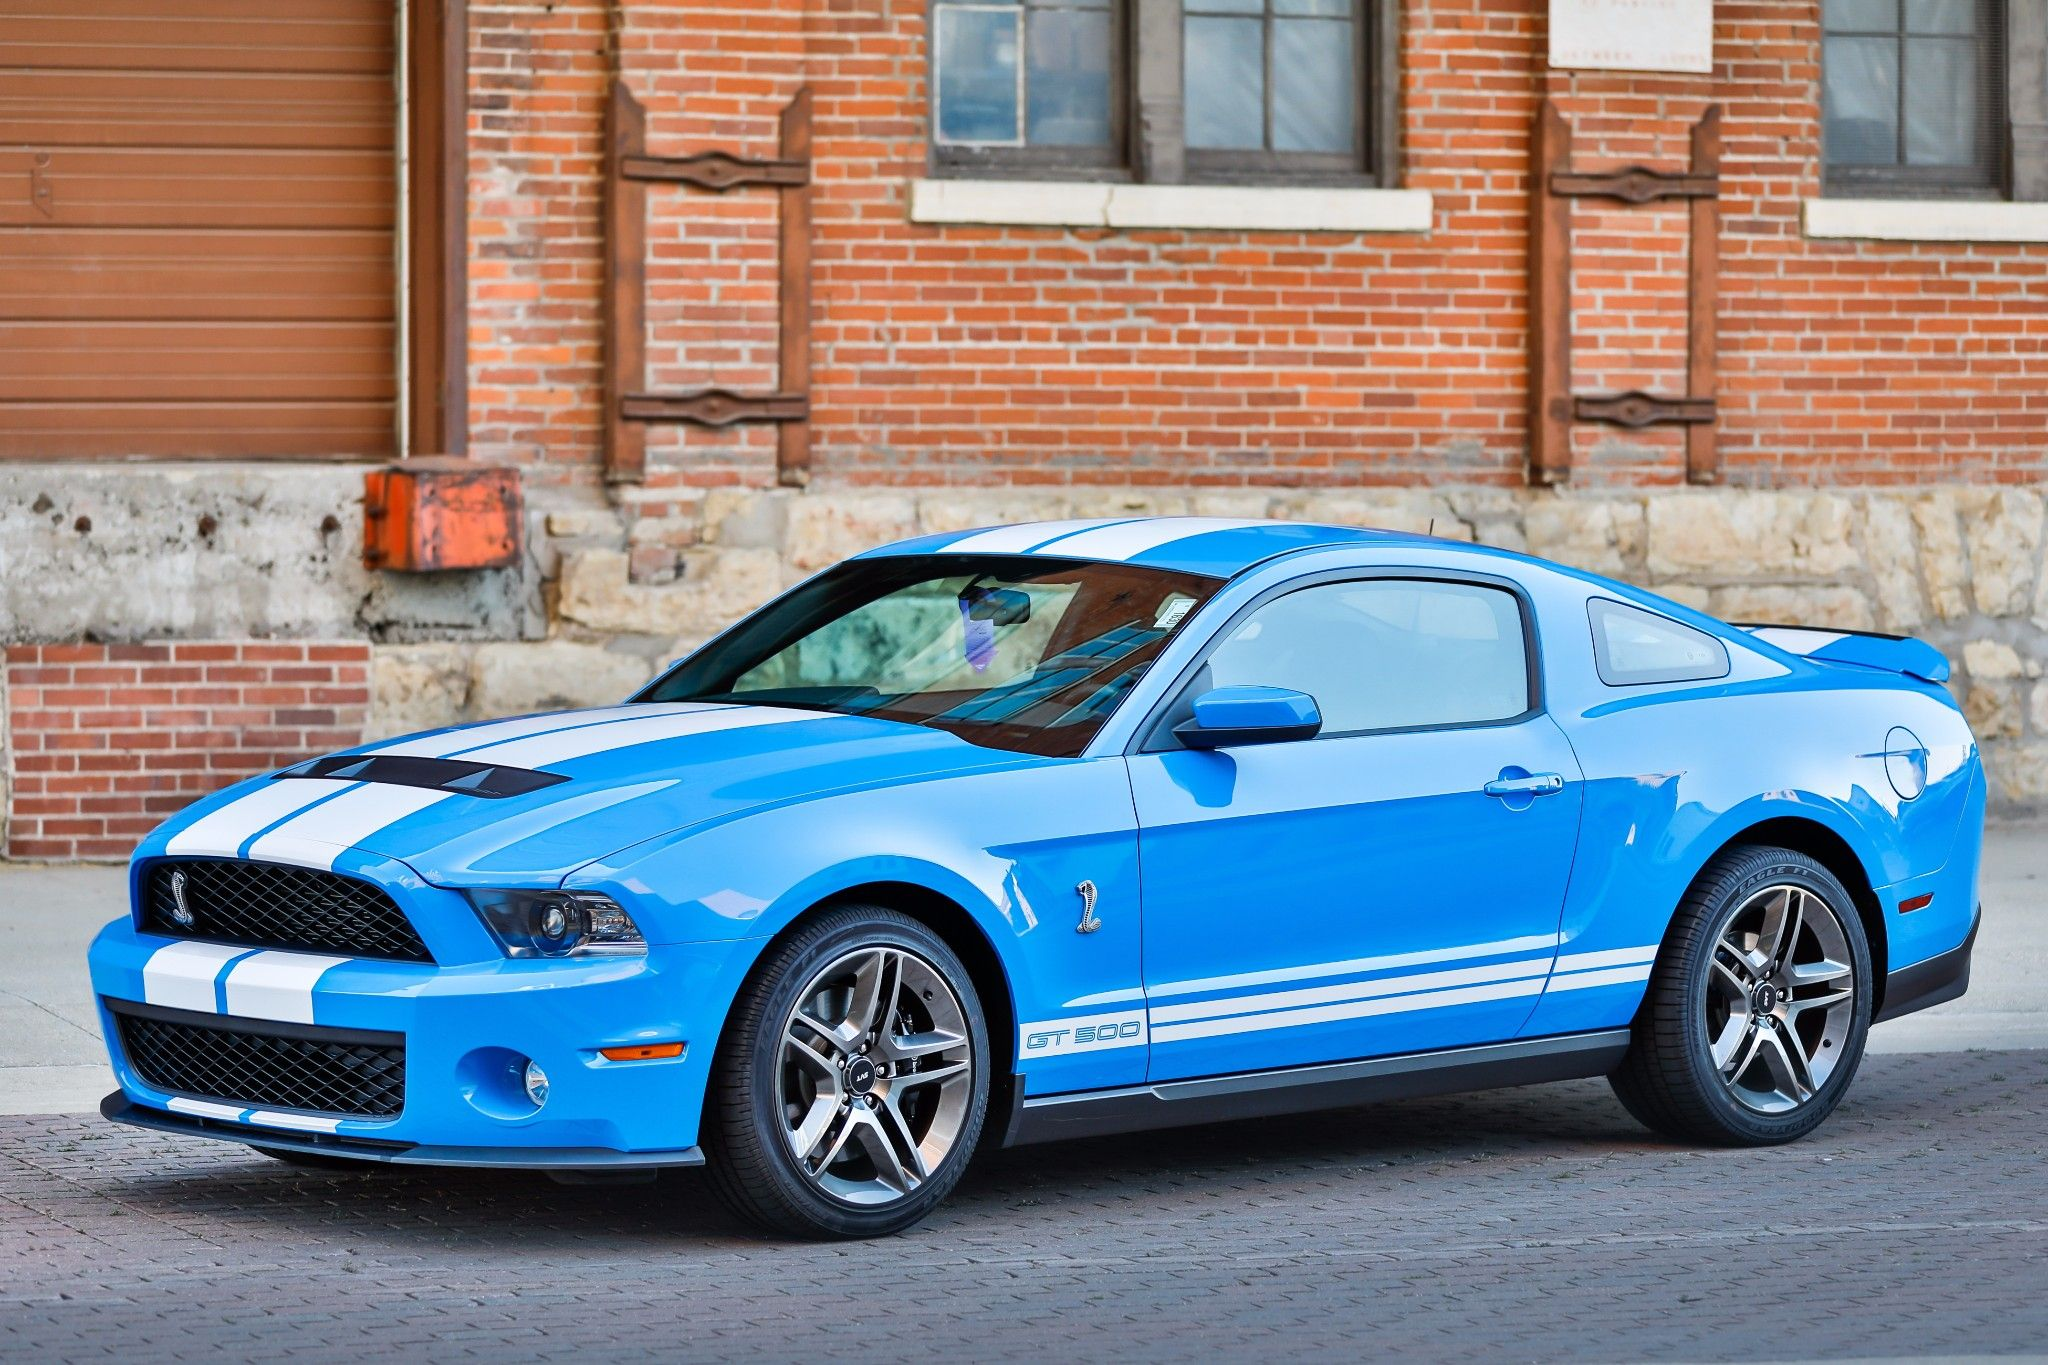 2100 Mile 2010 Ford Mustang Shelby Gt500 Ford Mustang Shelby